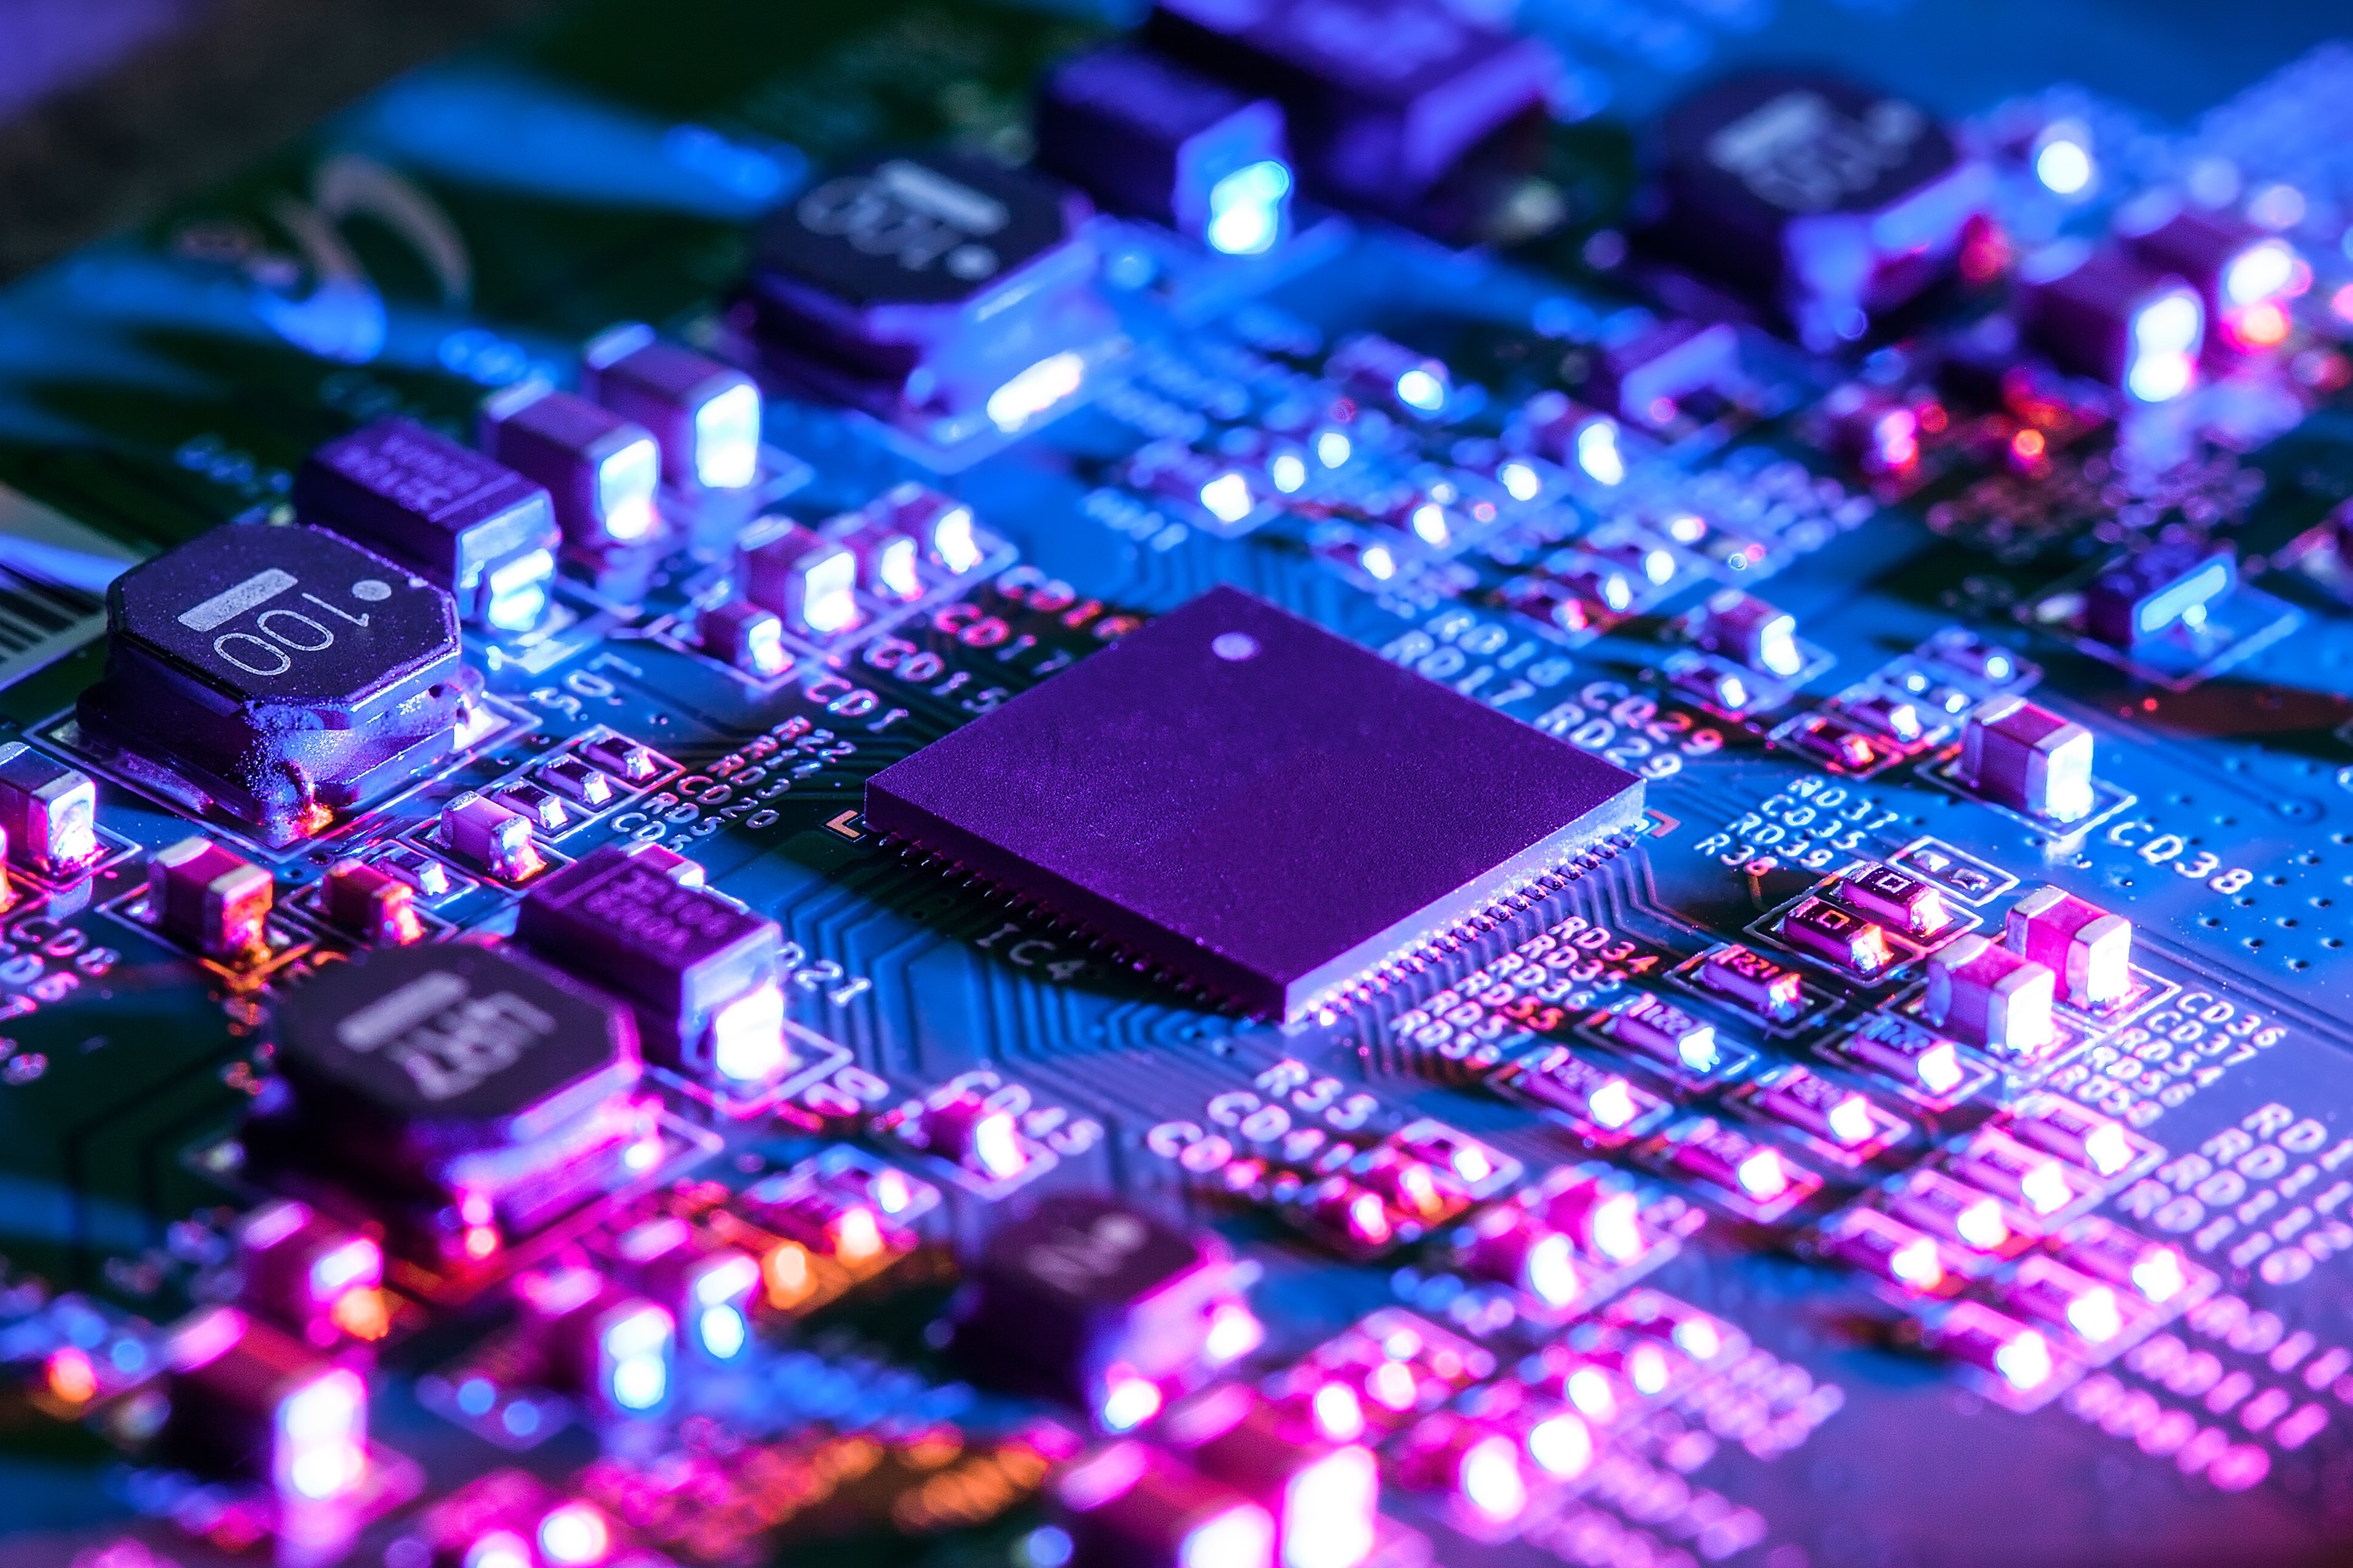 Psychedelic Circuit Board Guide And Troubleshooting Of Wiring Wallpaper Digital Art Wallpapers 13785 Electronics Machine Technology Electronic Computer Printed Background